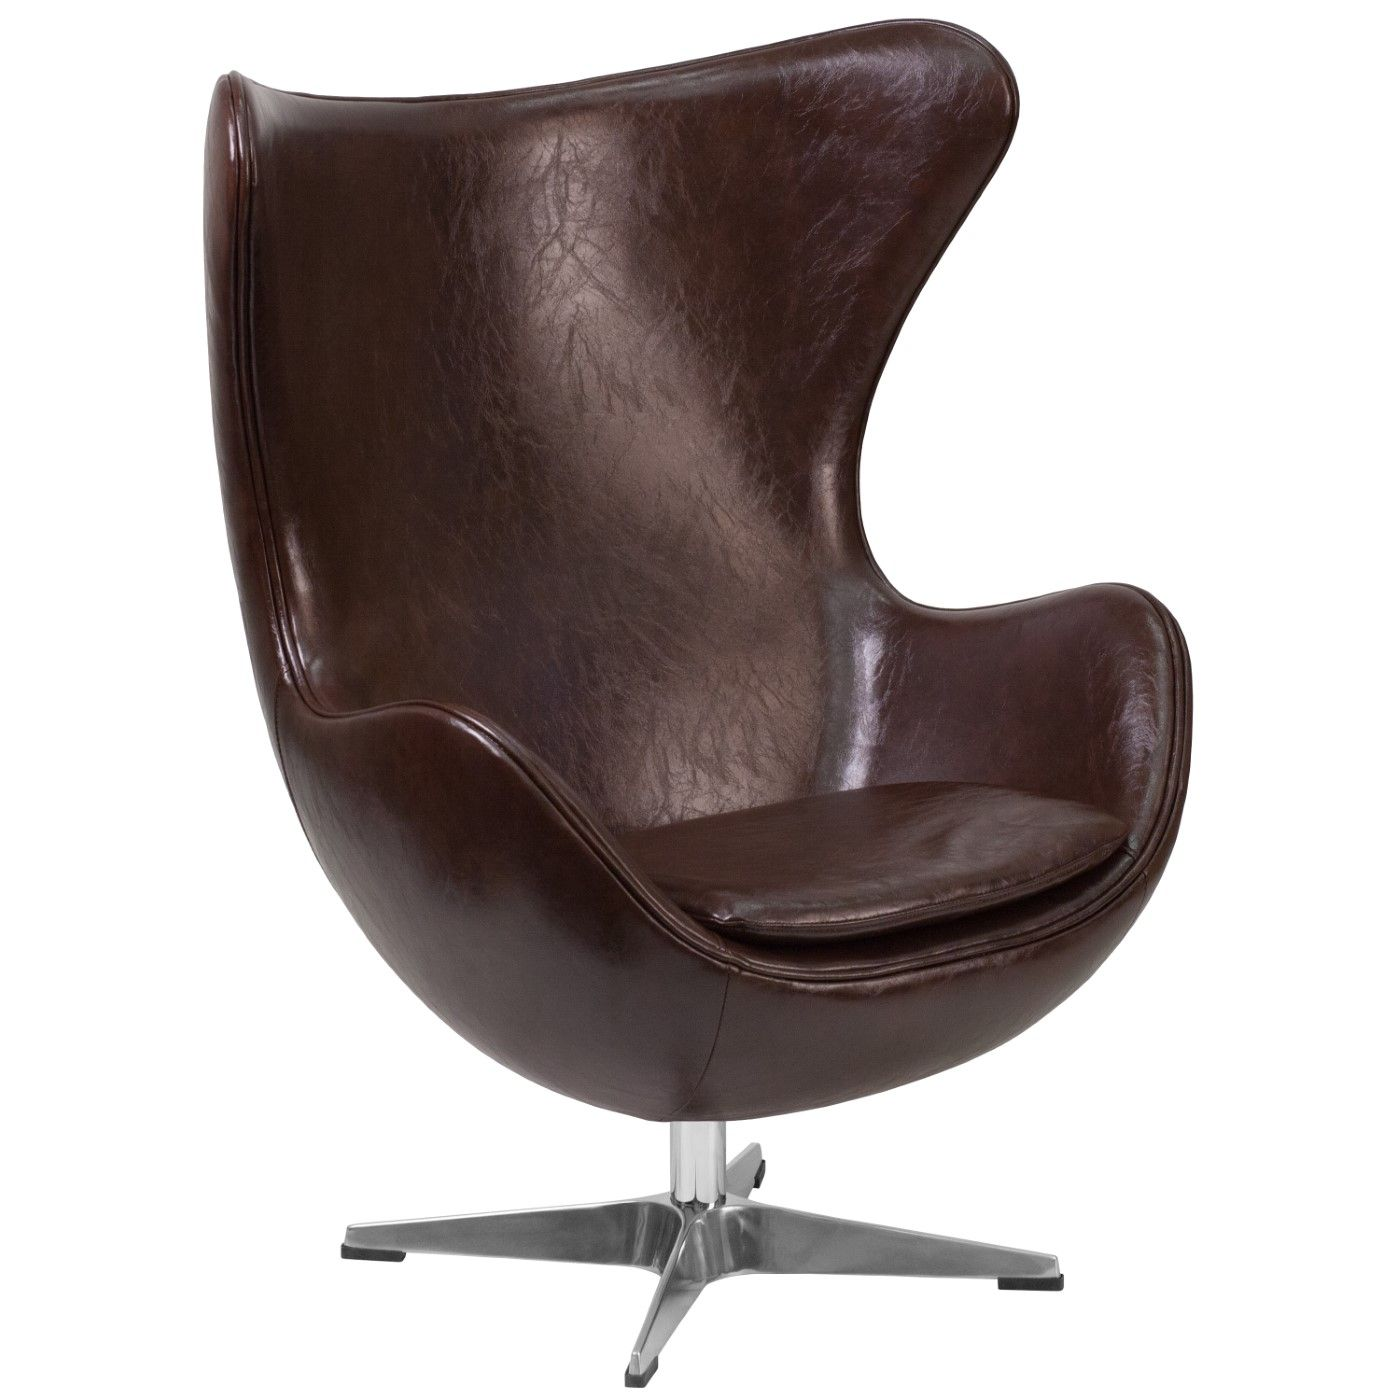 Brown LeatherSoft Egg Chair with Tilt-Lock Mechanism